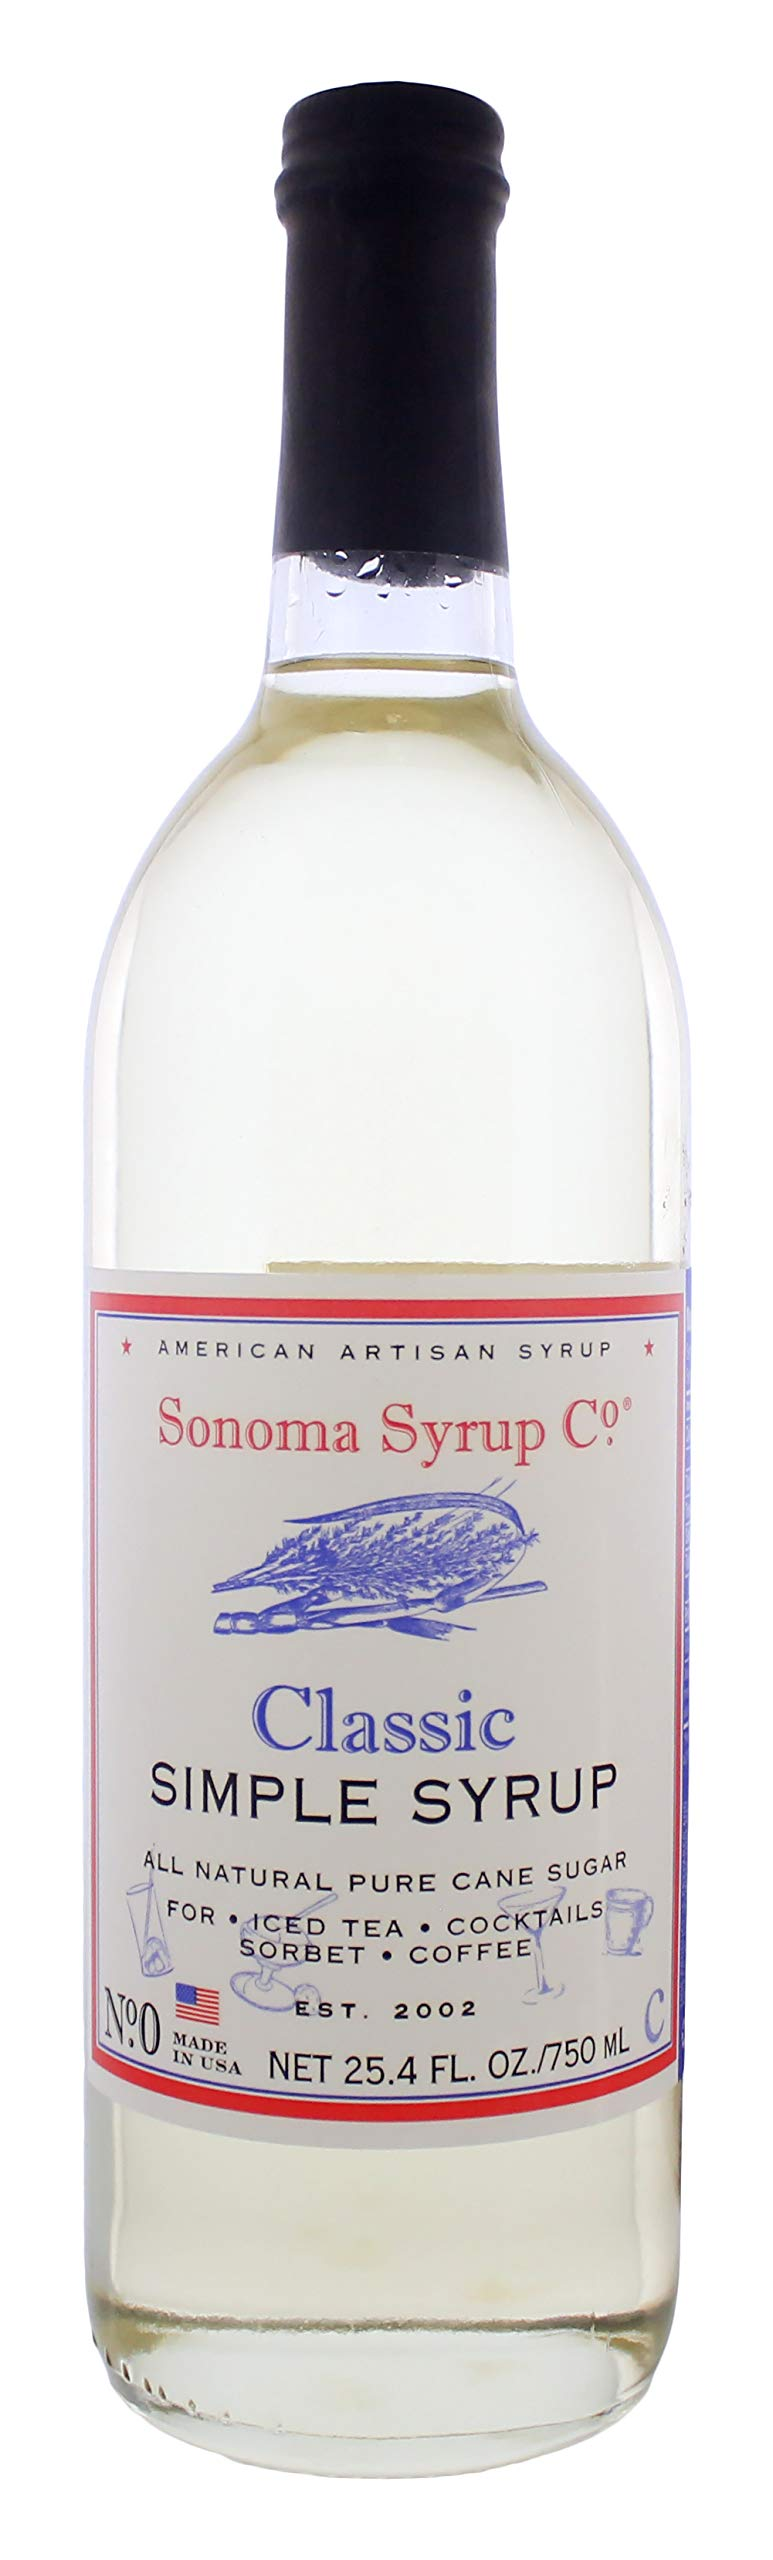 Sonoma Syrup Co. Classic Simple Syrup 25.4 fl. oz by Sonoma Syrup Co.